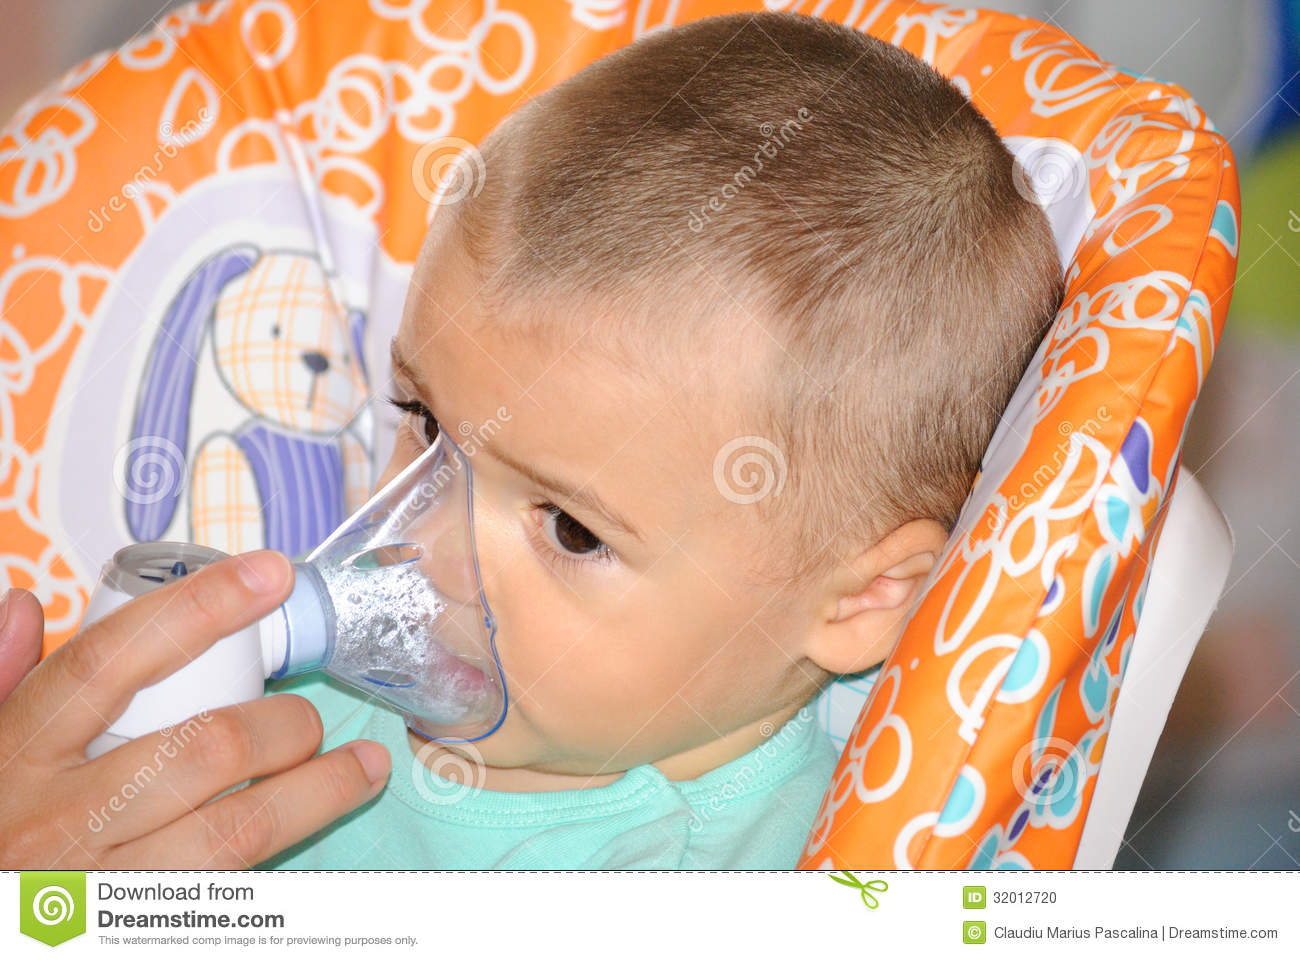 Nebulizers for Asthma Treatment